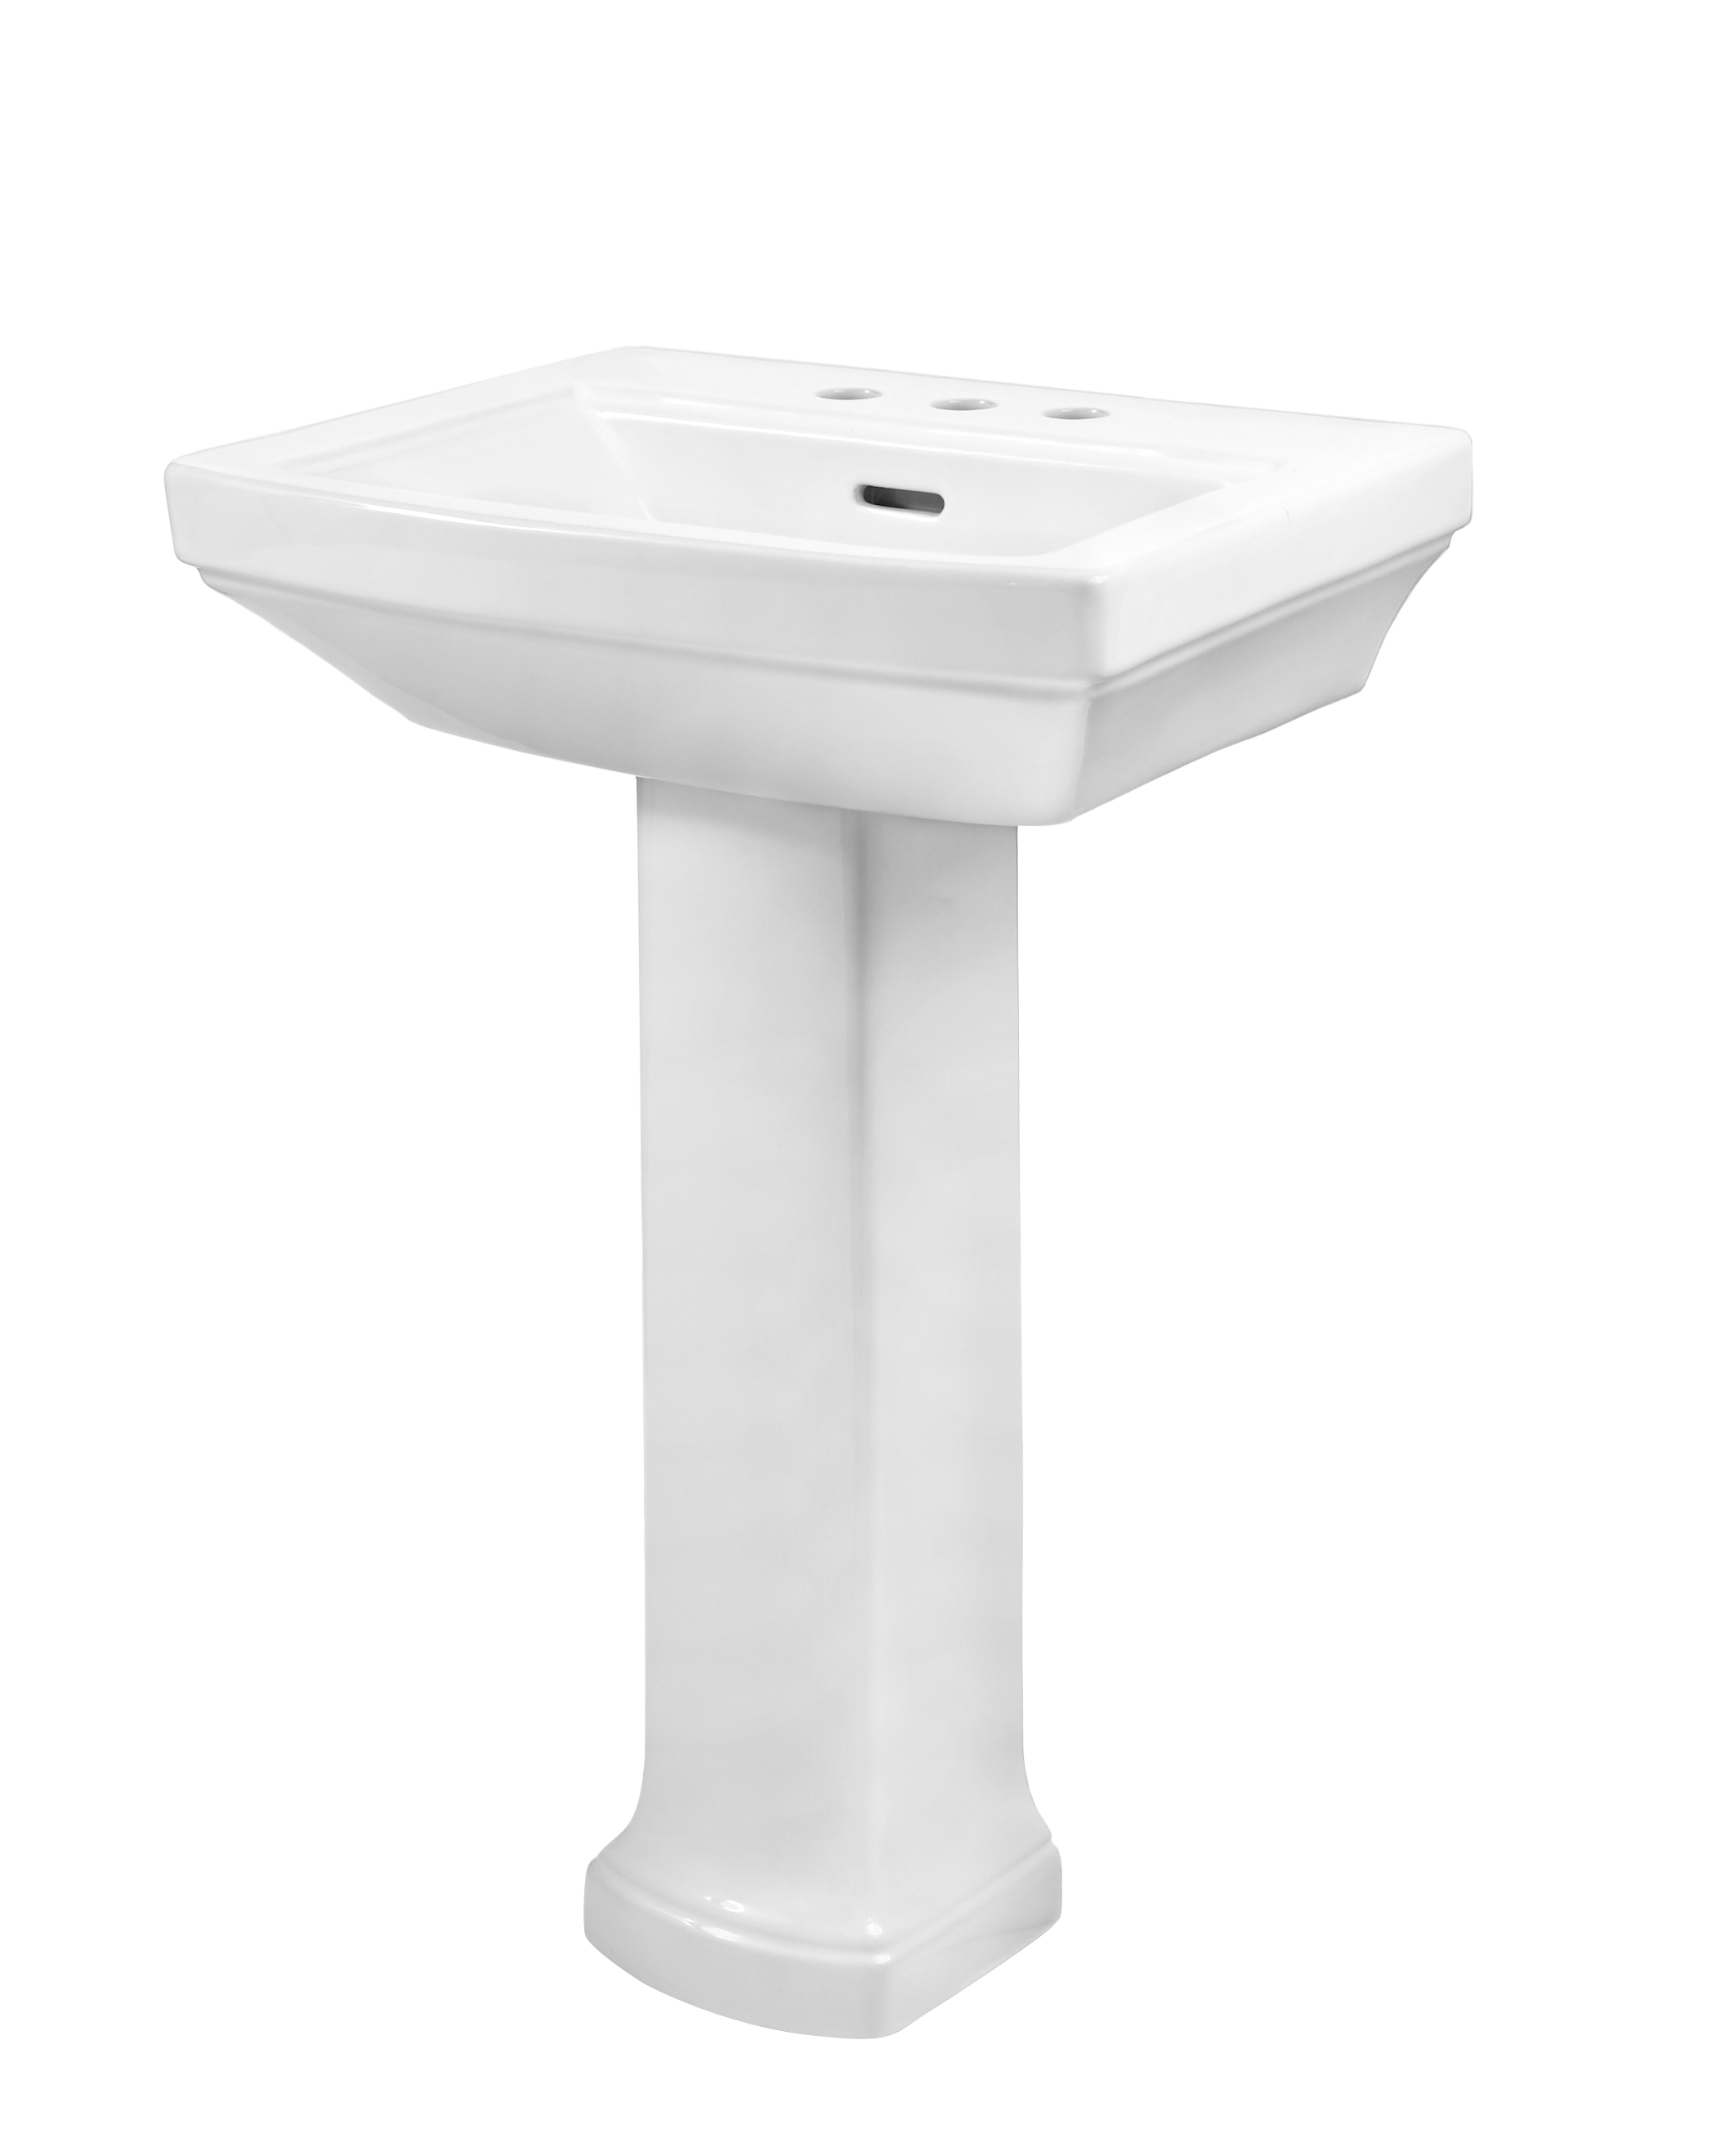 modern pedestal decor bathroom sleek inch douglas top for white on sink vanity cabinet elements